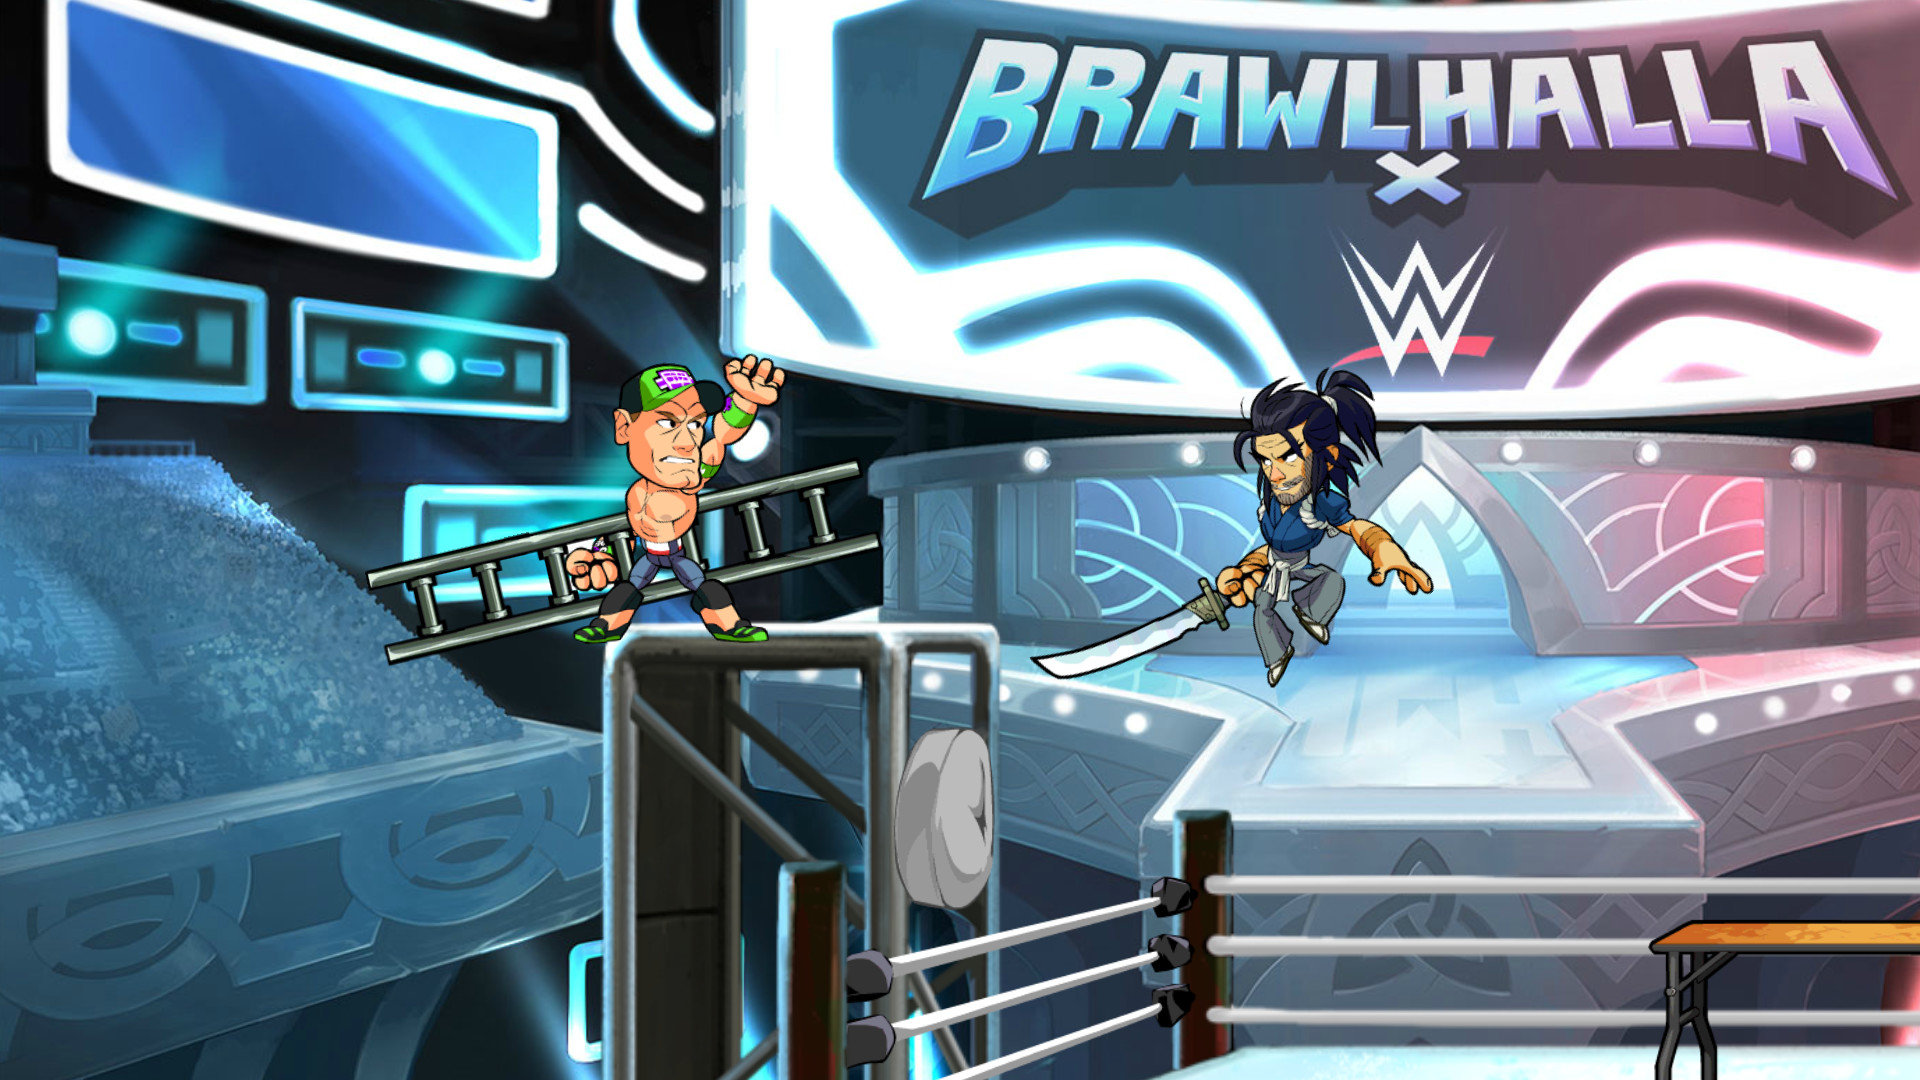 Brawlhalla Gameplay Screenshot 1